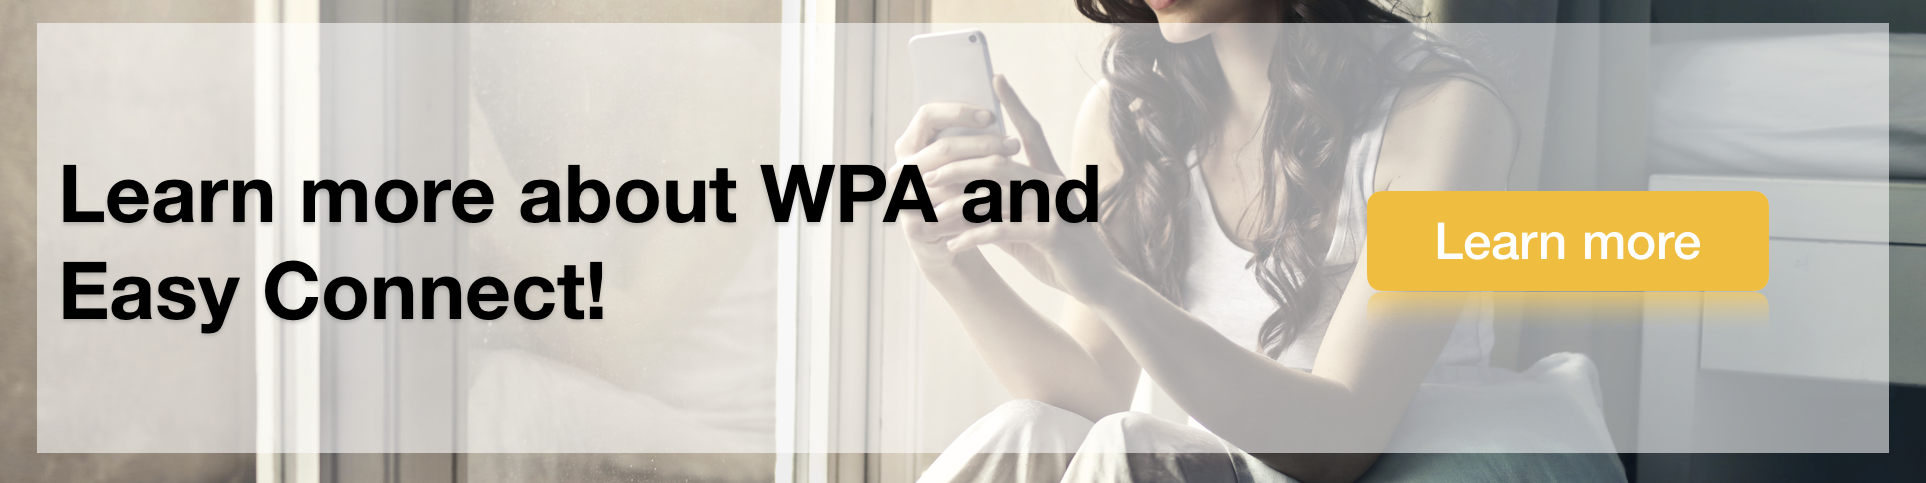 Learn more about WPA and Easy Connect